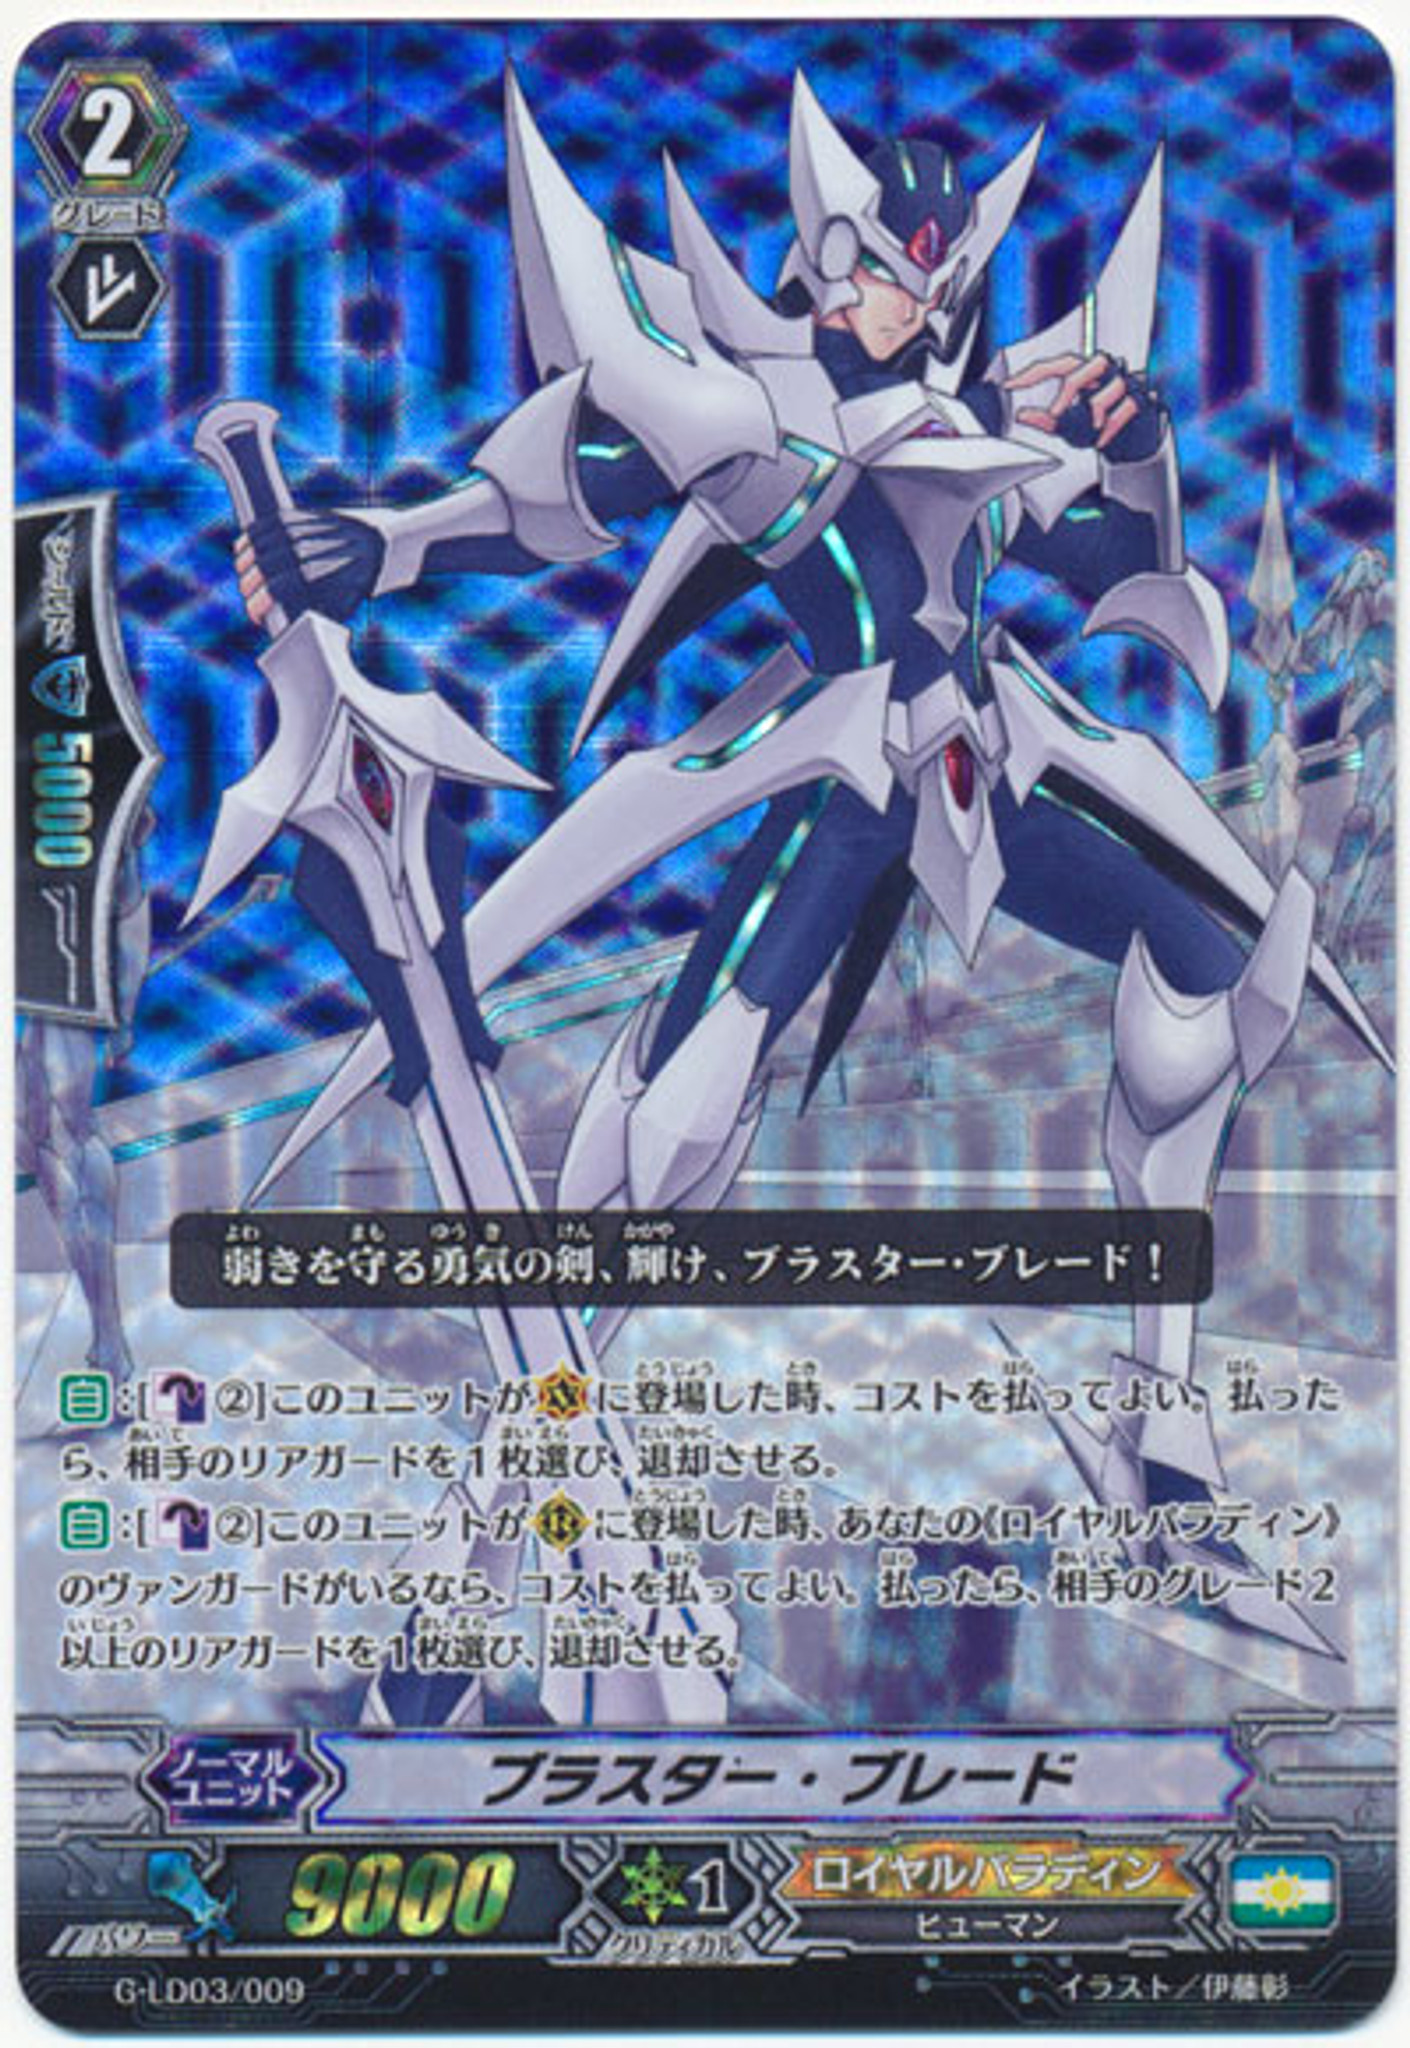 Card Fight Vanguard The Blaster Aichi Sendou Legend Deck Royal Paladin Sealed